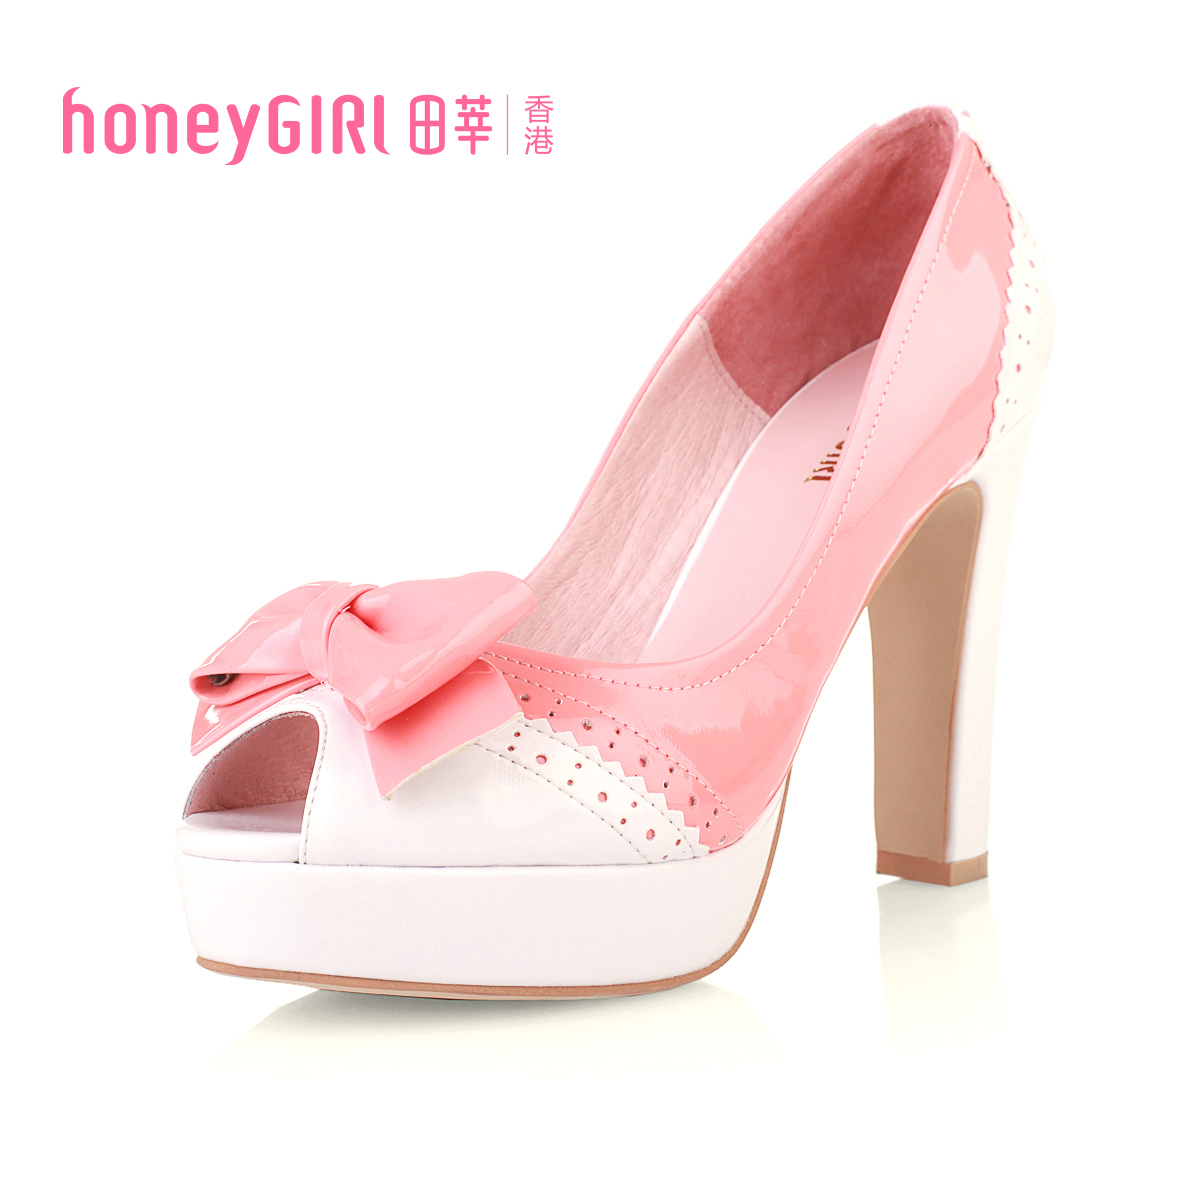 Spring and summer new arrival honeygirl sweet color block decoration bow open toe high heeled shoes single shoes thick heel on Aliexpress.com